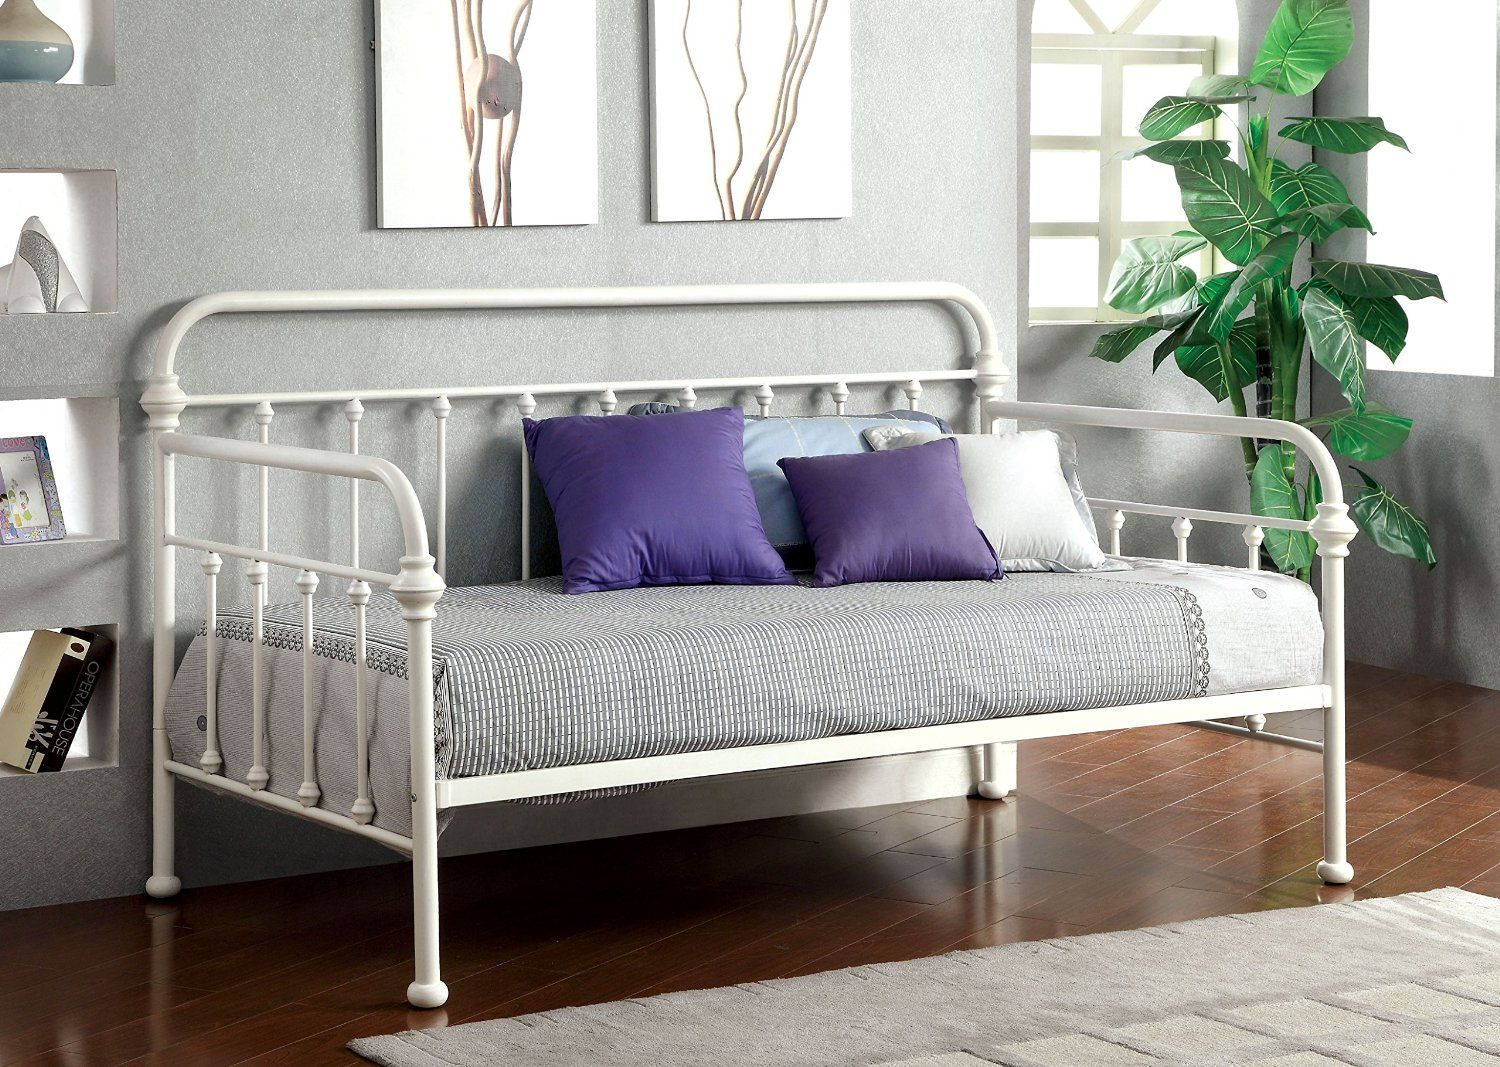 Amazon Com Furniture Of America Florian Metal Daybed Vintage White Metal Daybed Metal Daybed With Trundle Daybed With Trundle